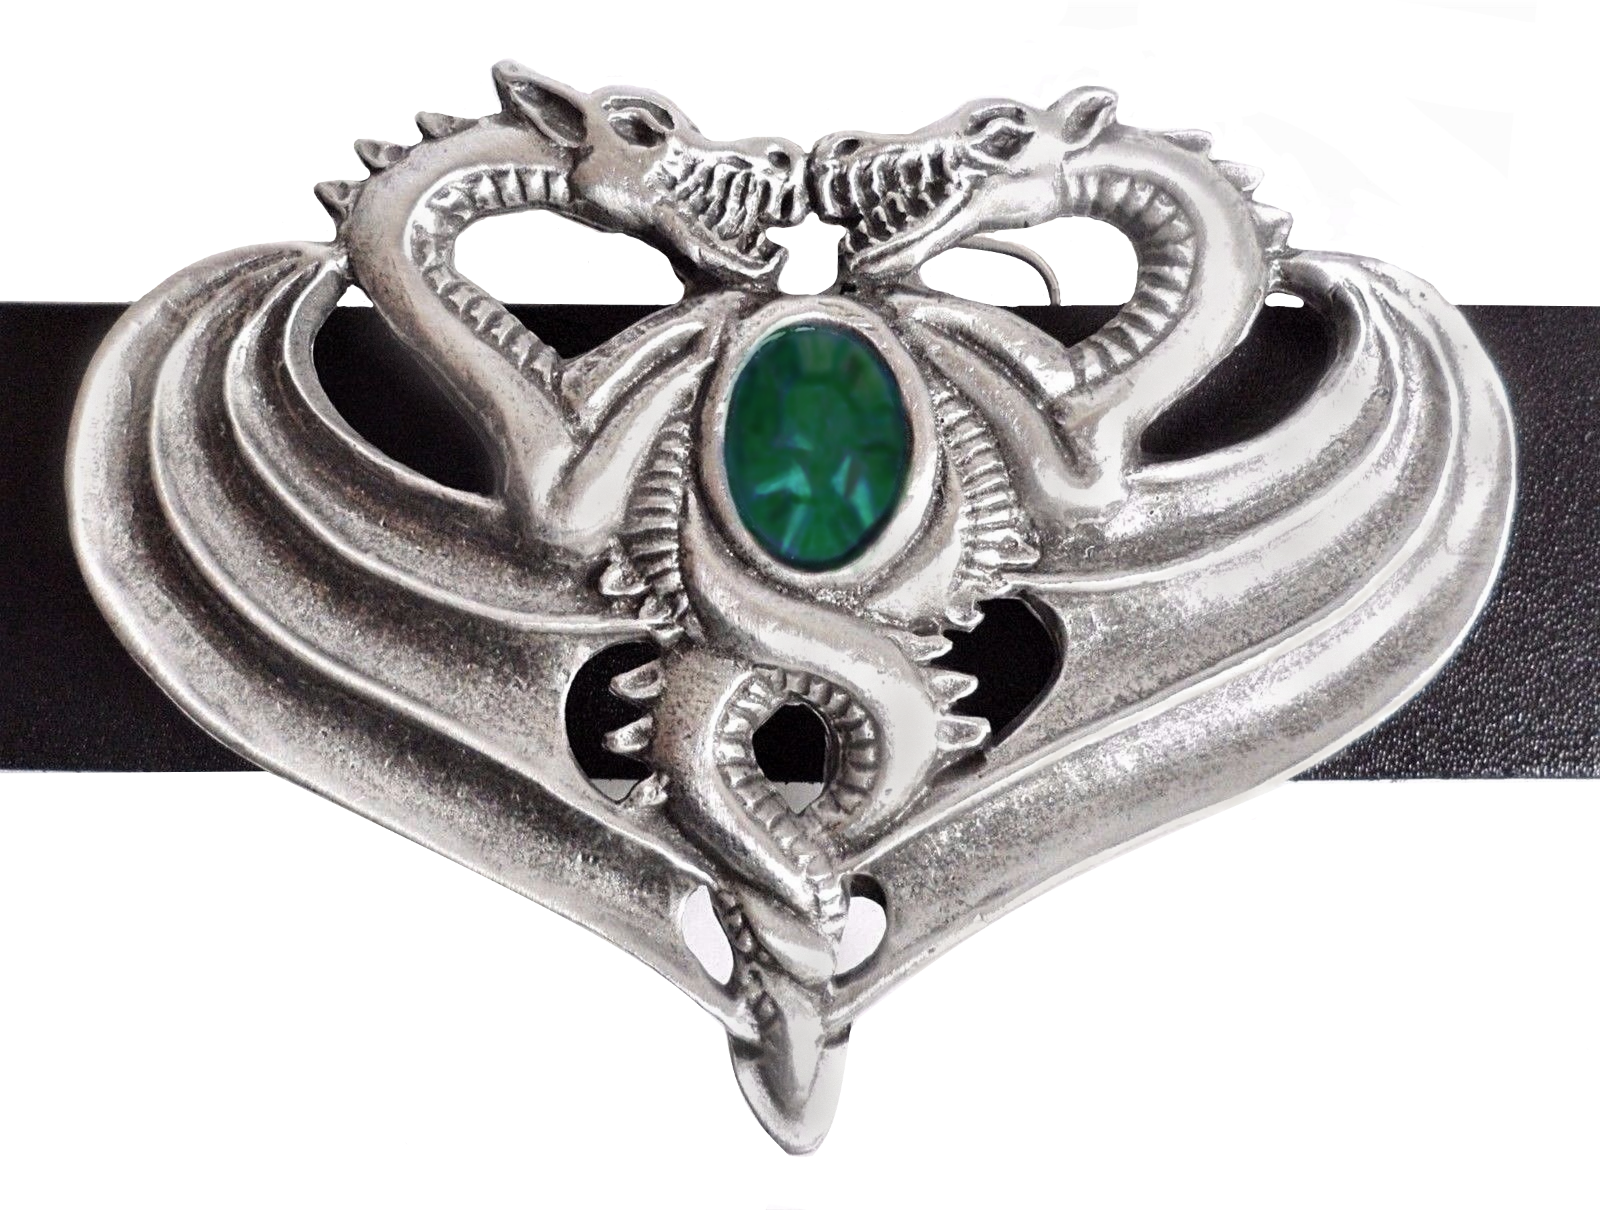 Opposing Dragons Belt Buckle - Hand Made in Pewter with Emerald-coloured Stone